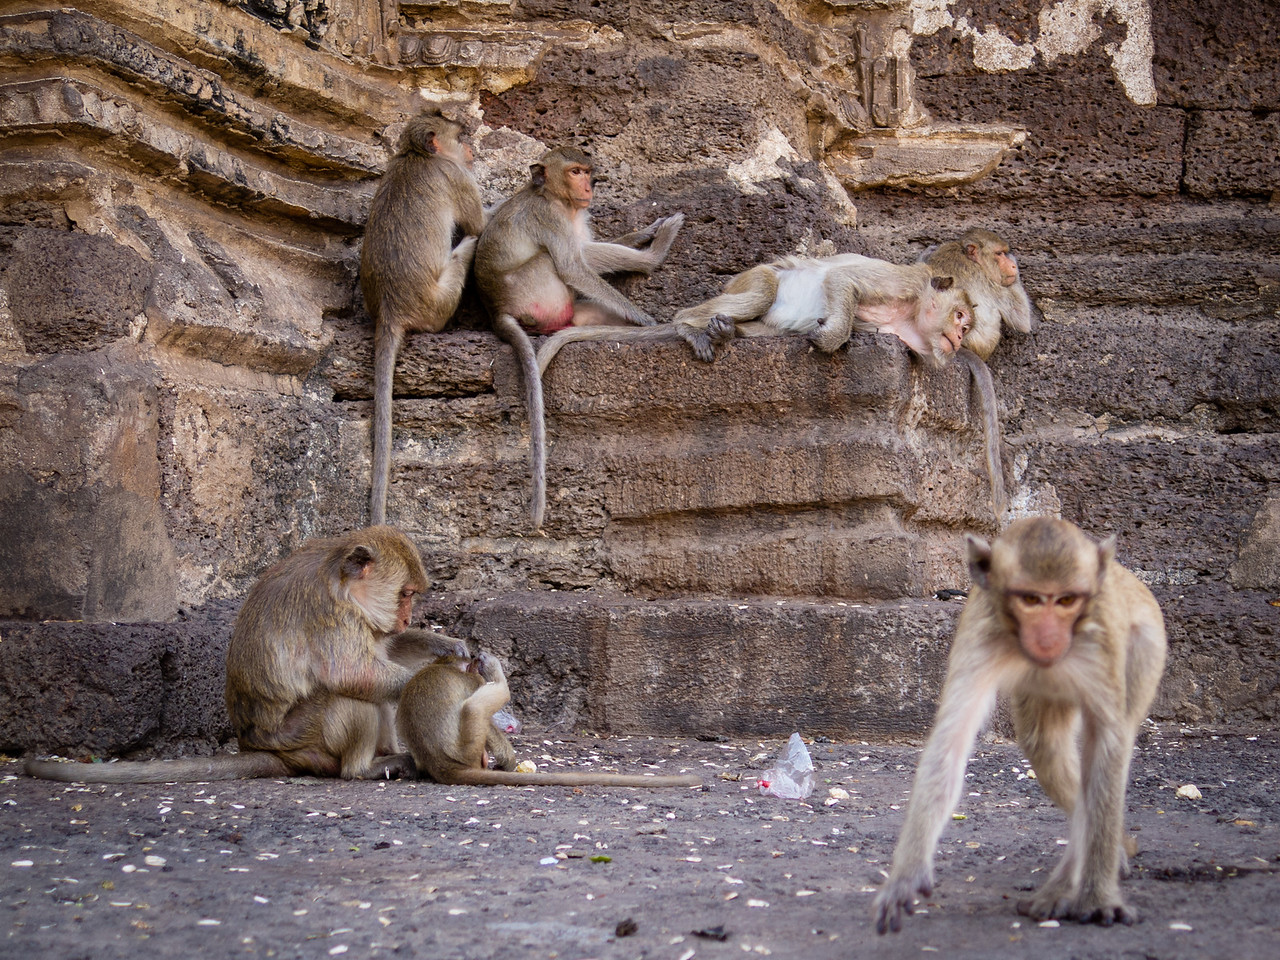 Monkeys at the Lopburi Monkey Temple